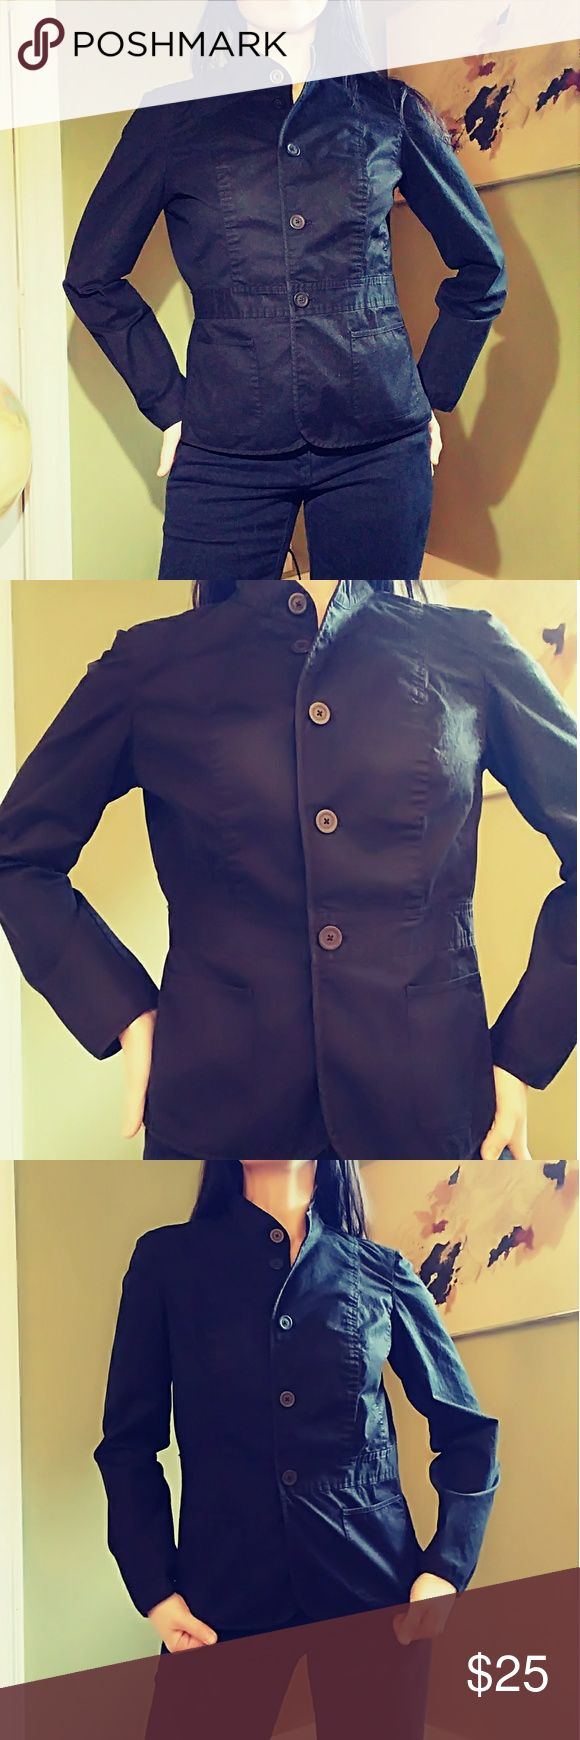 💠TALBOTS BLACK STRETCH JACKET 💠 Excellent condition. Cotton and a lil spandex.  Feel free to ask any questions. For reference I'm 5'6. 135 lbs Talbot's Jackets & Coats Blazers